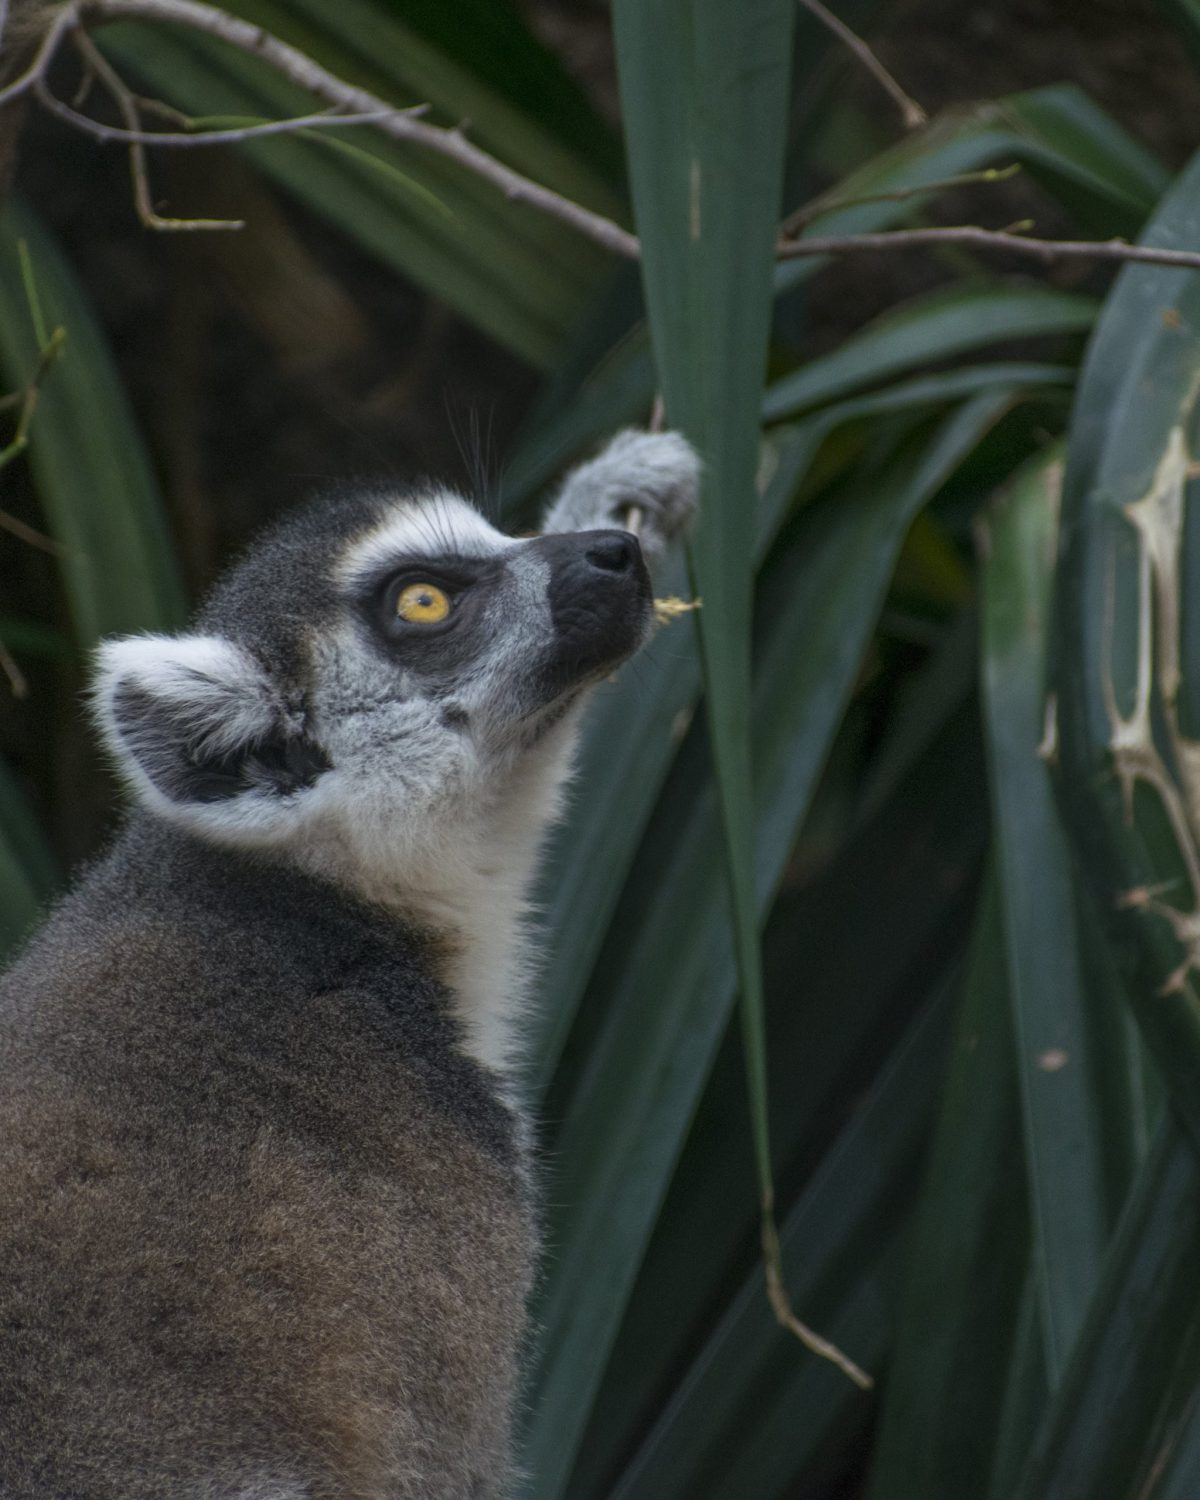 A Ring-tailed Lemur grasps a plant in the Lemur Forest exhibit